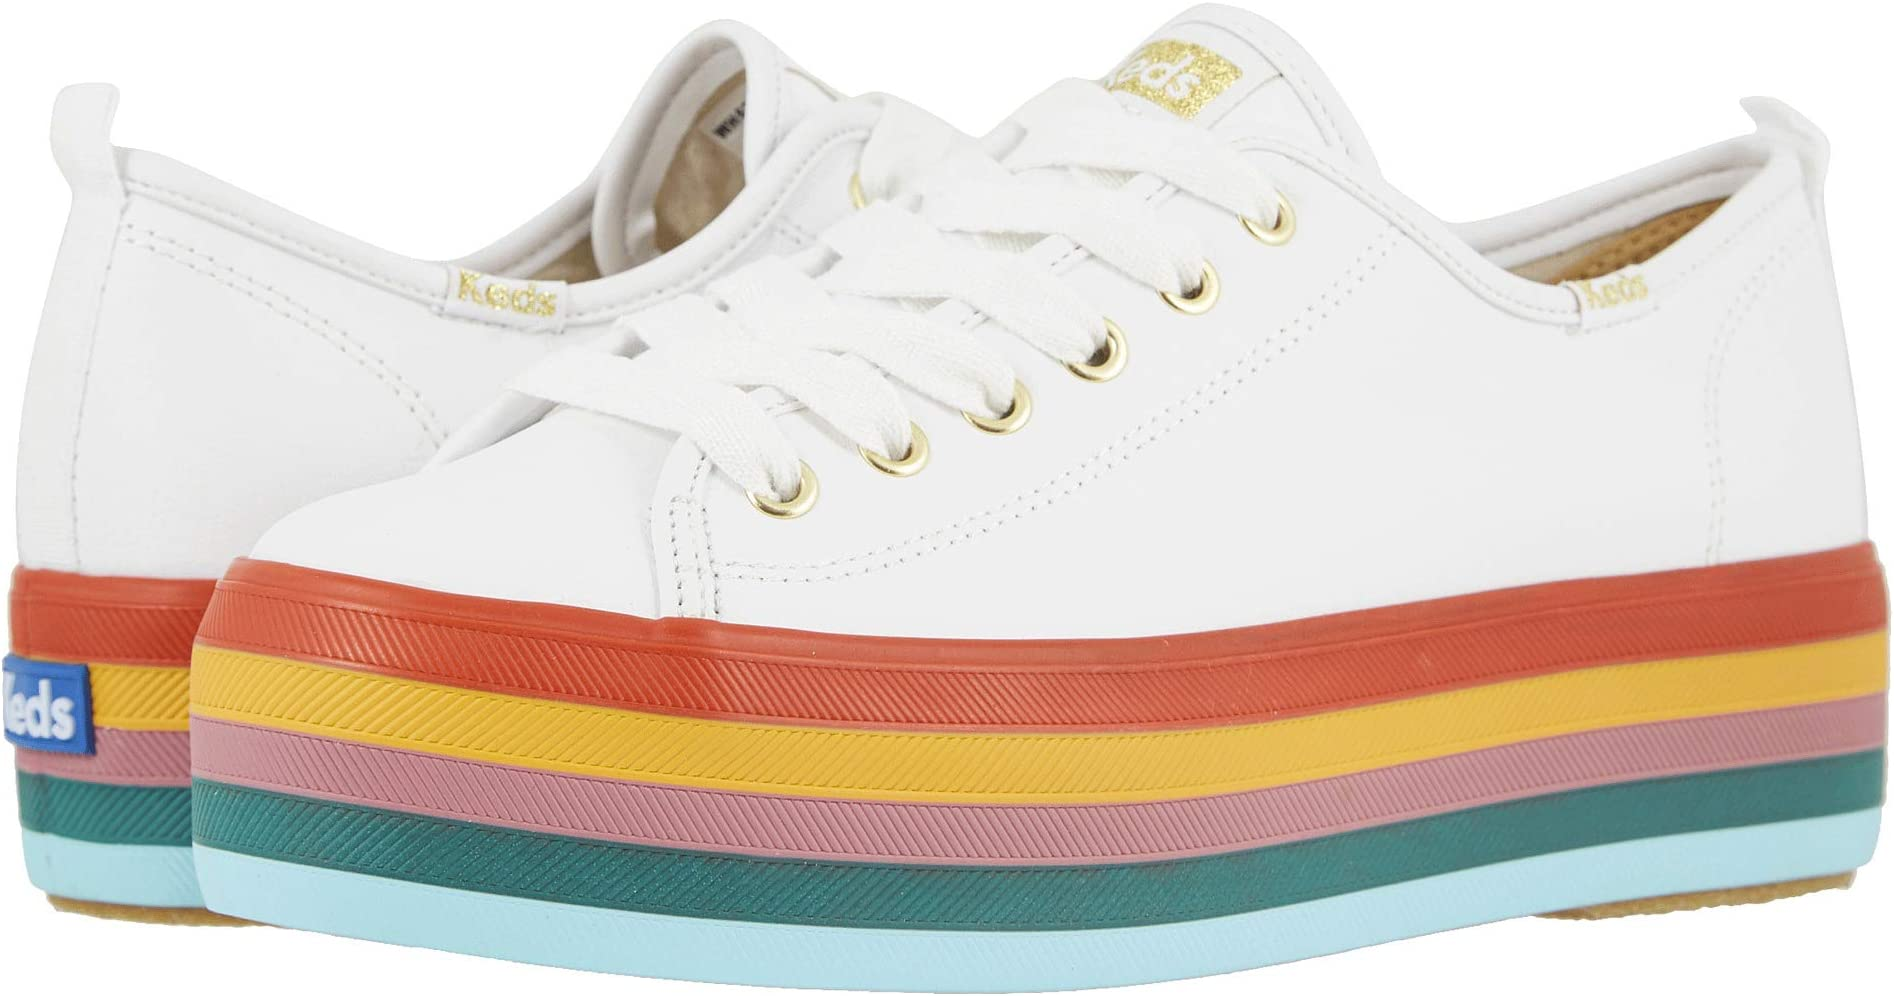 Keds Laceup Tripple